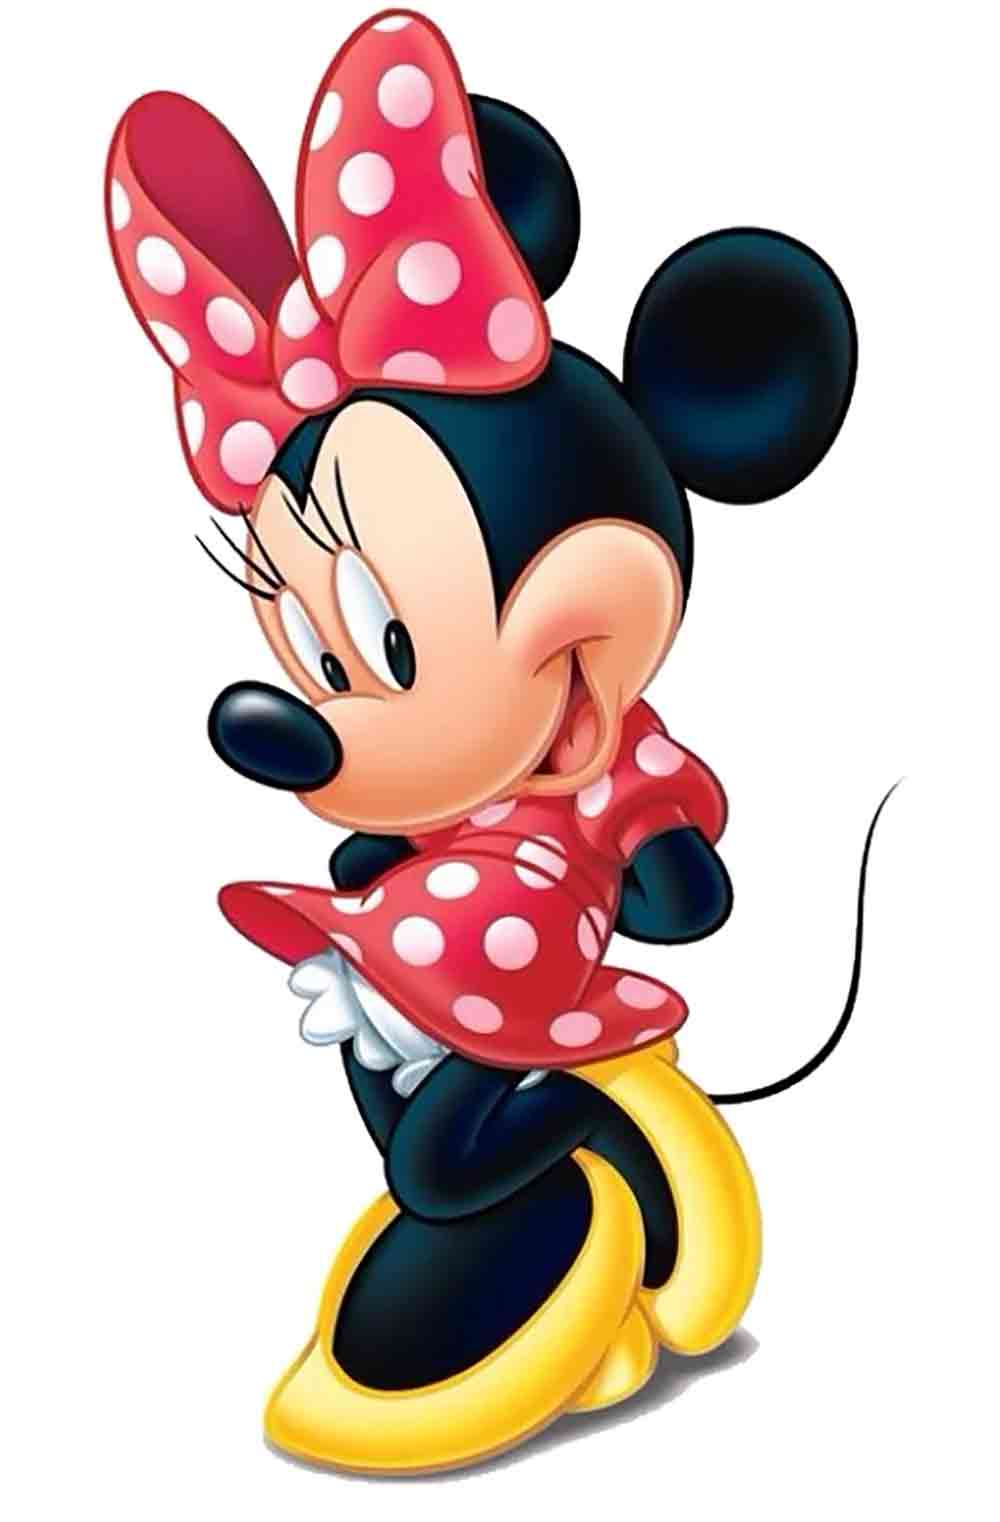 Image of Minnie Mouse in her iconic Polka Dot bow and dress used in a blog post about Polka Dot flooring by forthefloorandmore.com